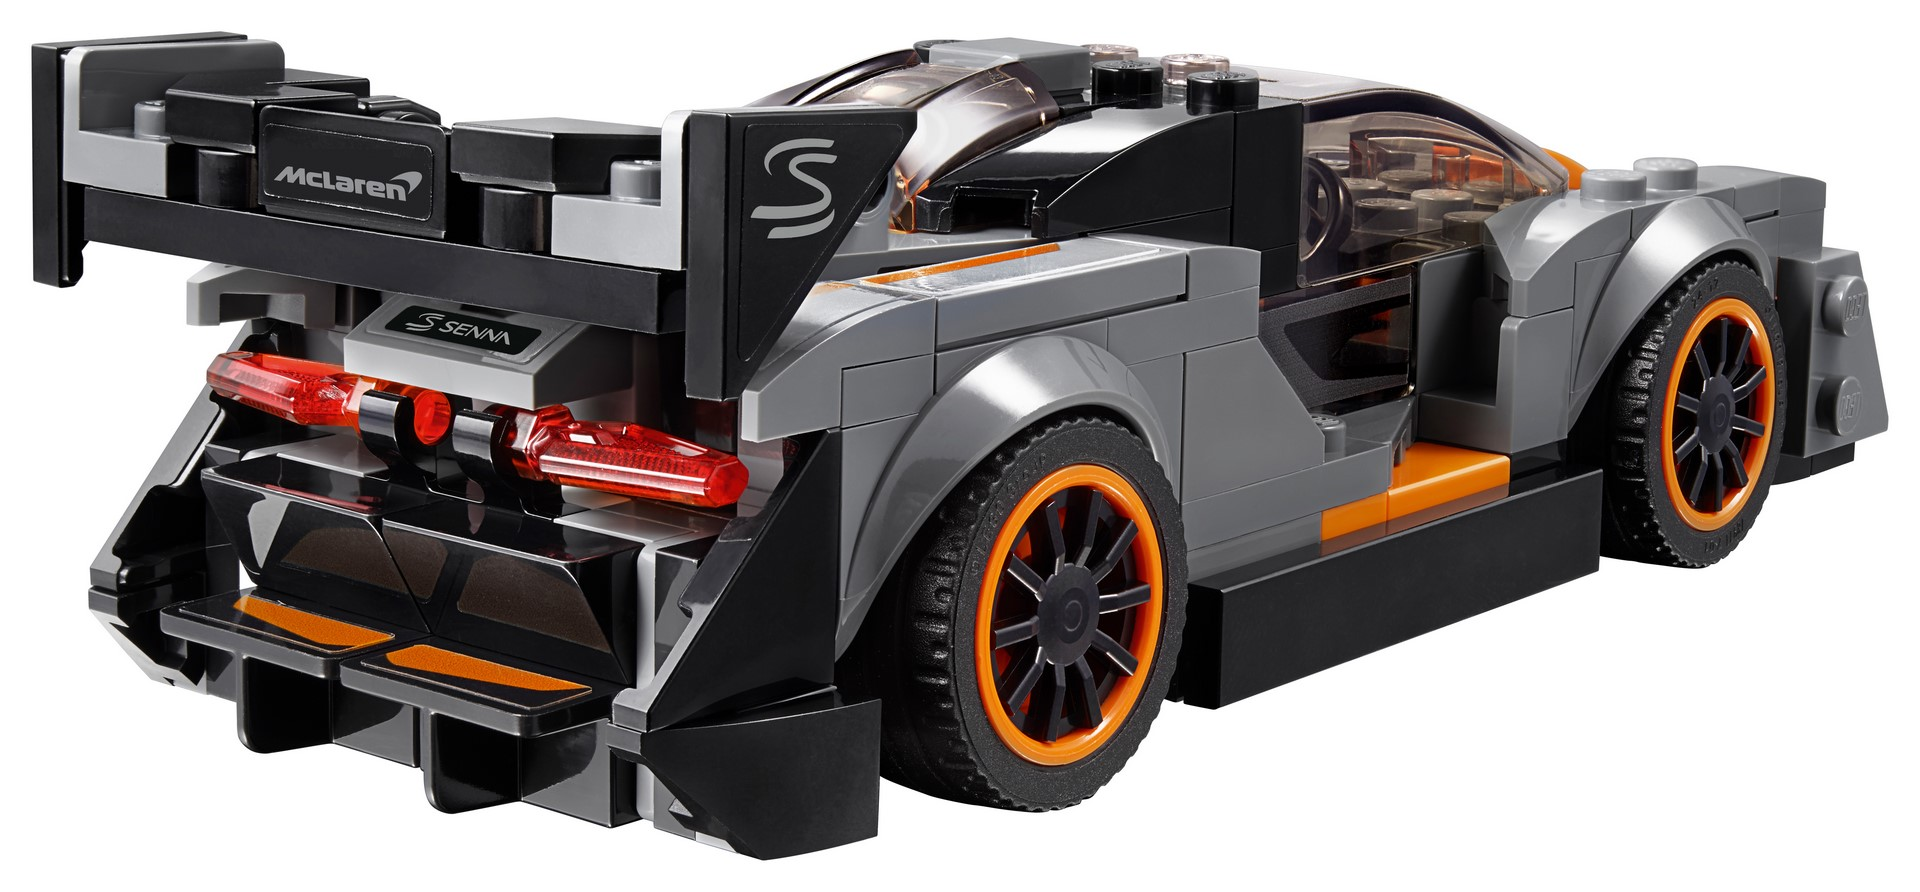 McLaren Senna Lego Speed Champions kit (2)